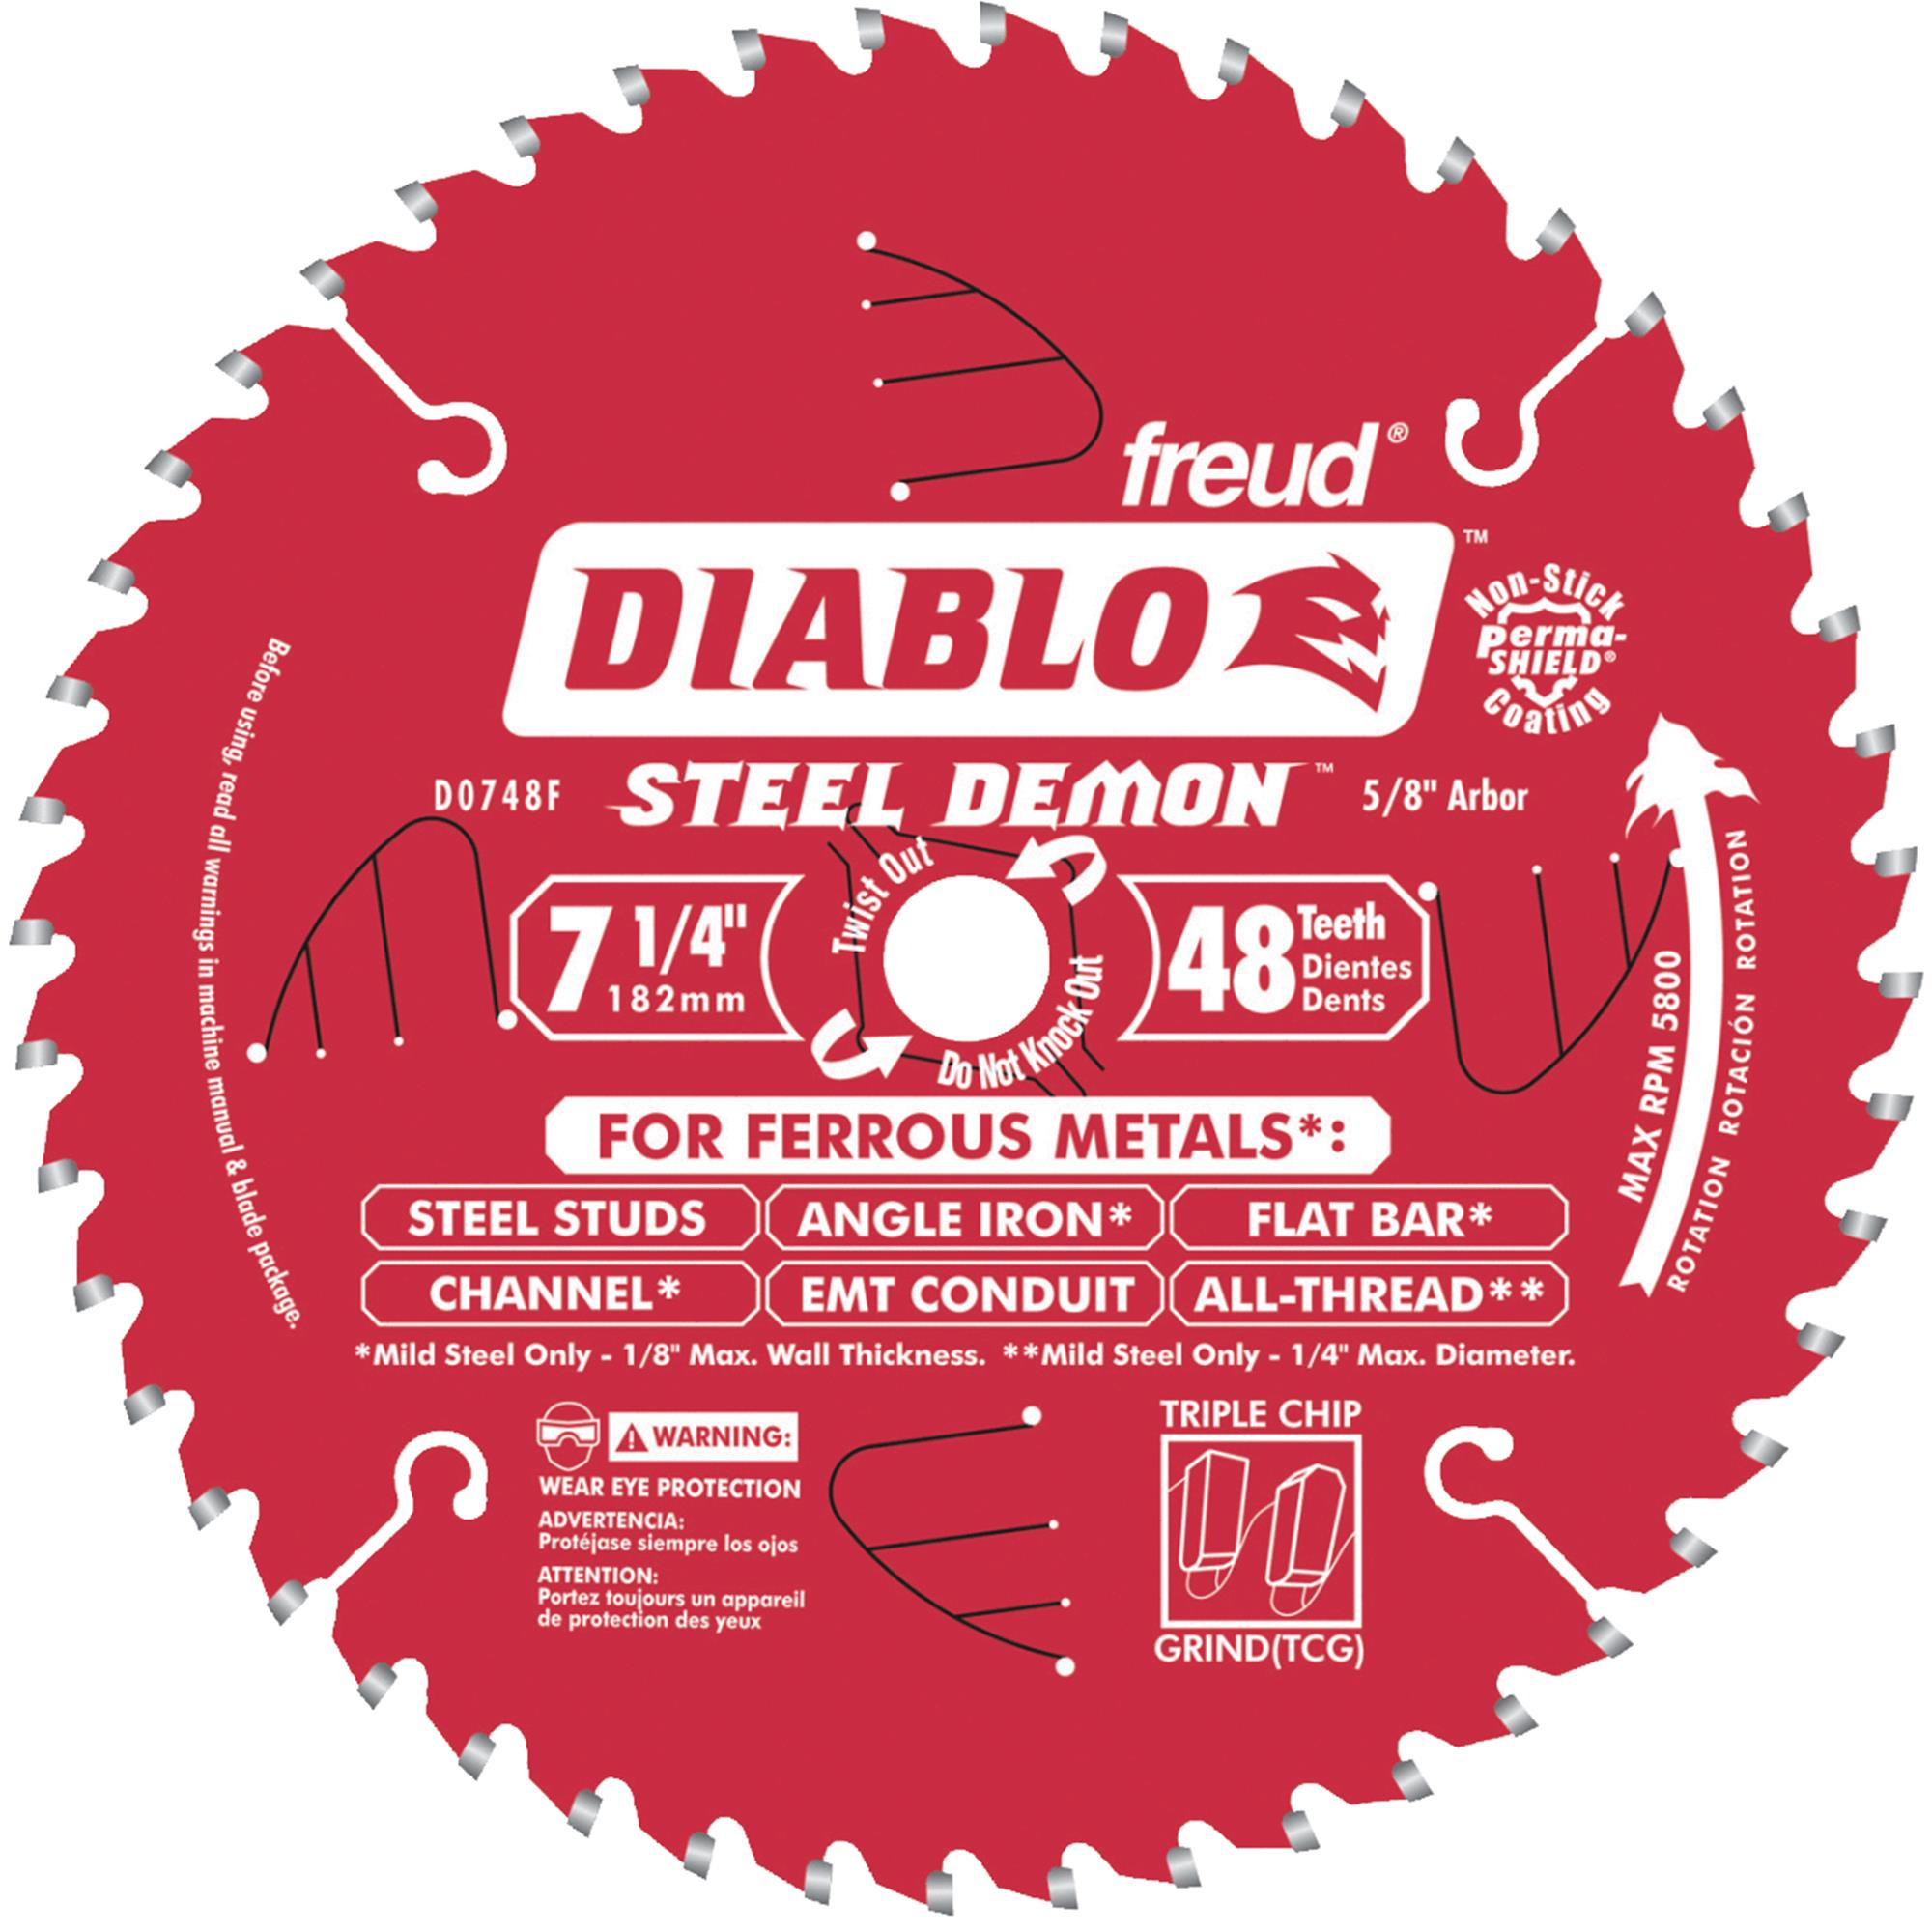 Diablo Steel Demon Circular Saw Blade